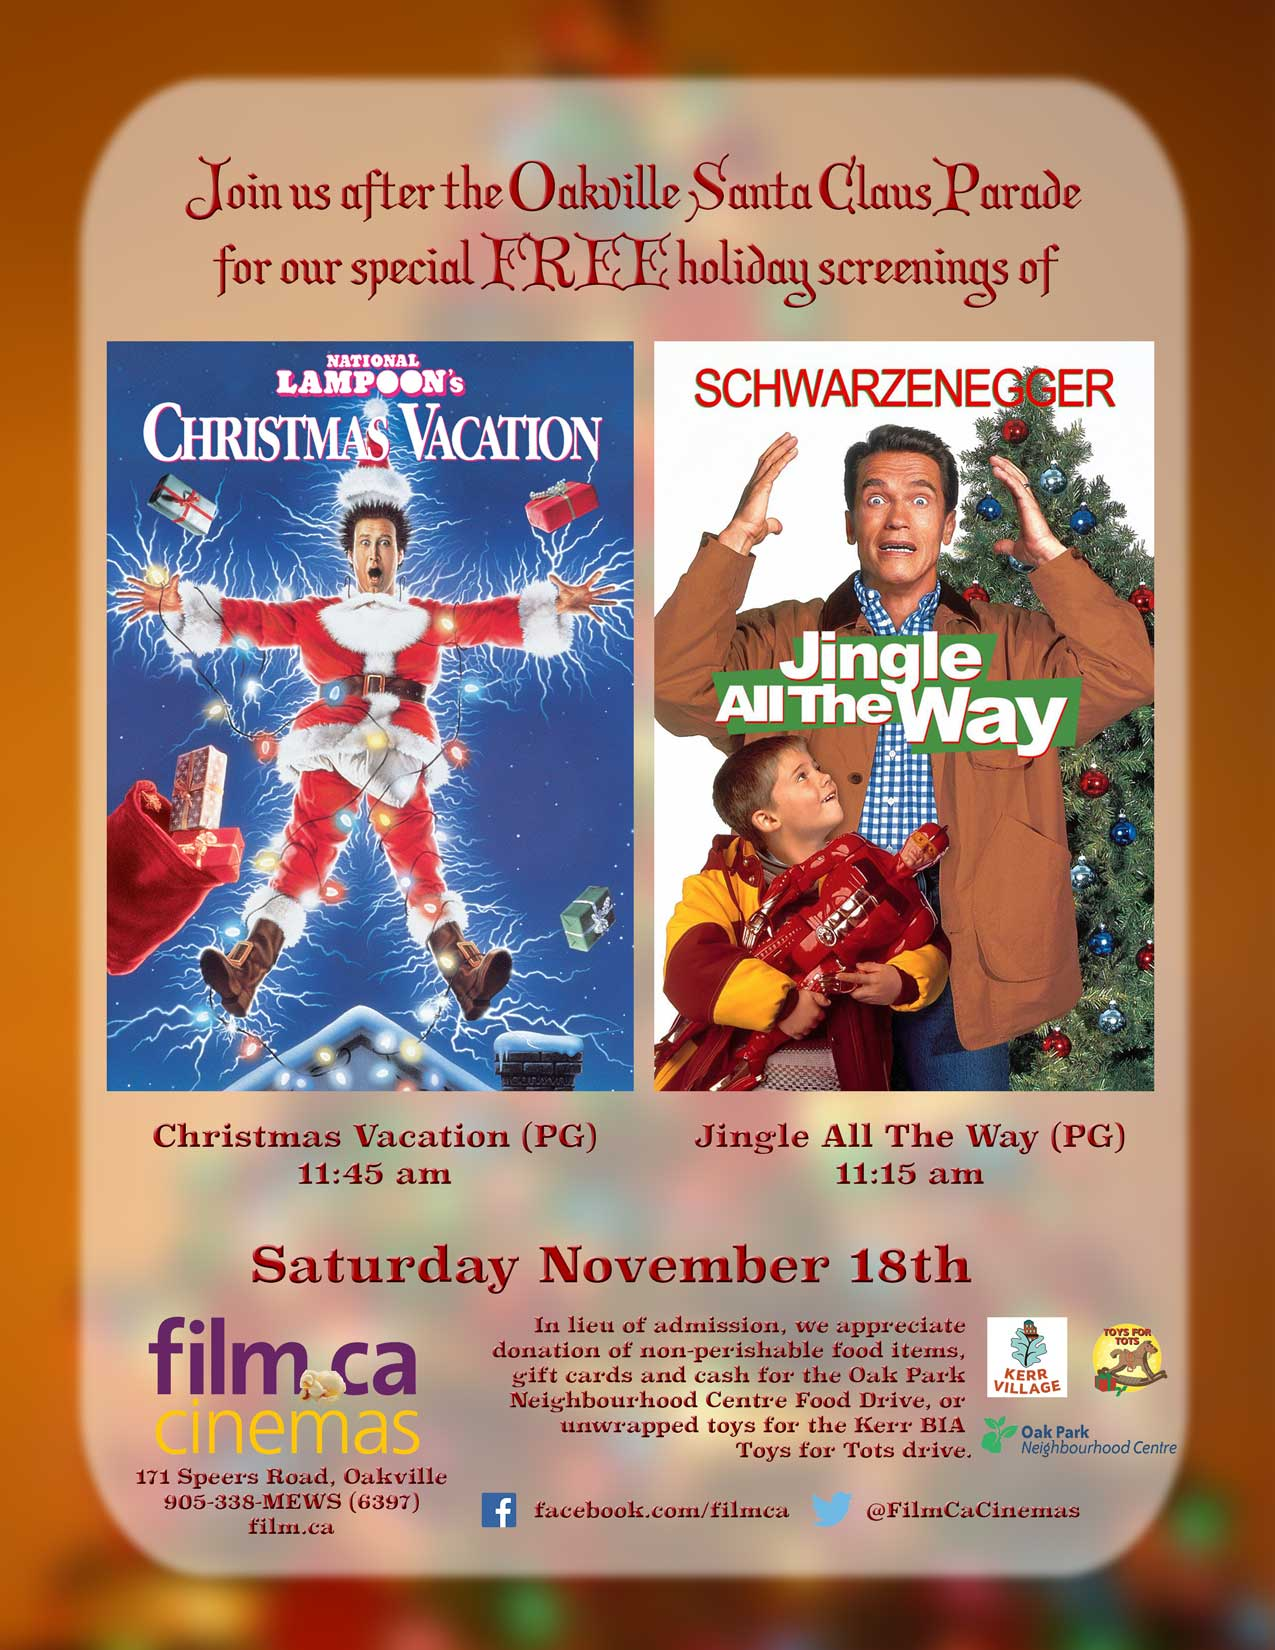 free christmas movies after the oakville santa claus parade - Christmas Movies For Free